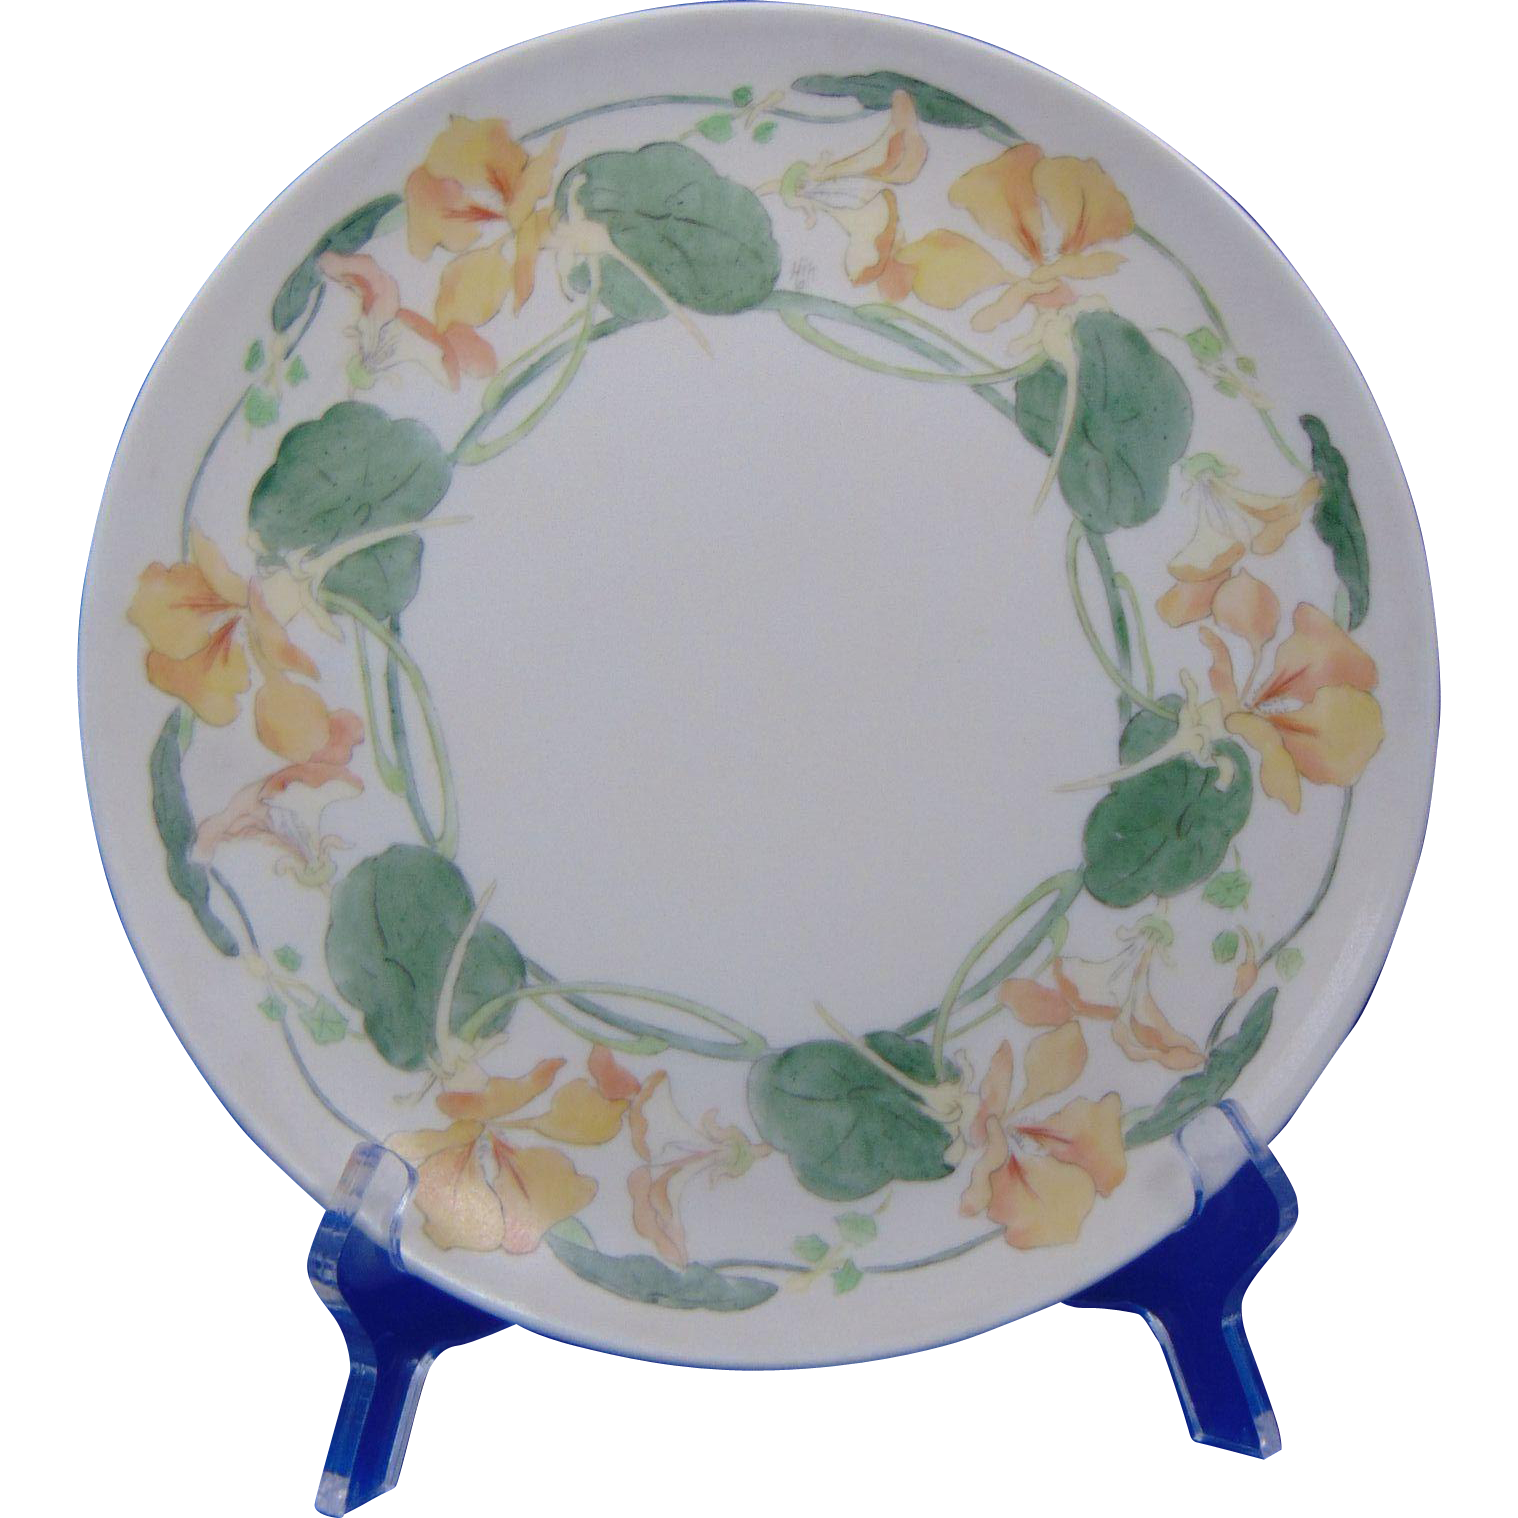 Haviland Limoges Arts & Crafts Nasturtium Motif Plate (Signed/c.1894-1931)